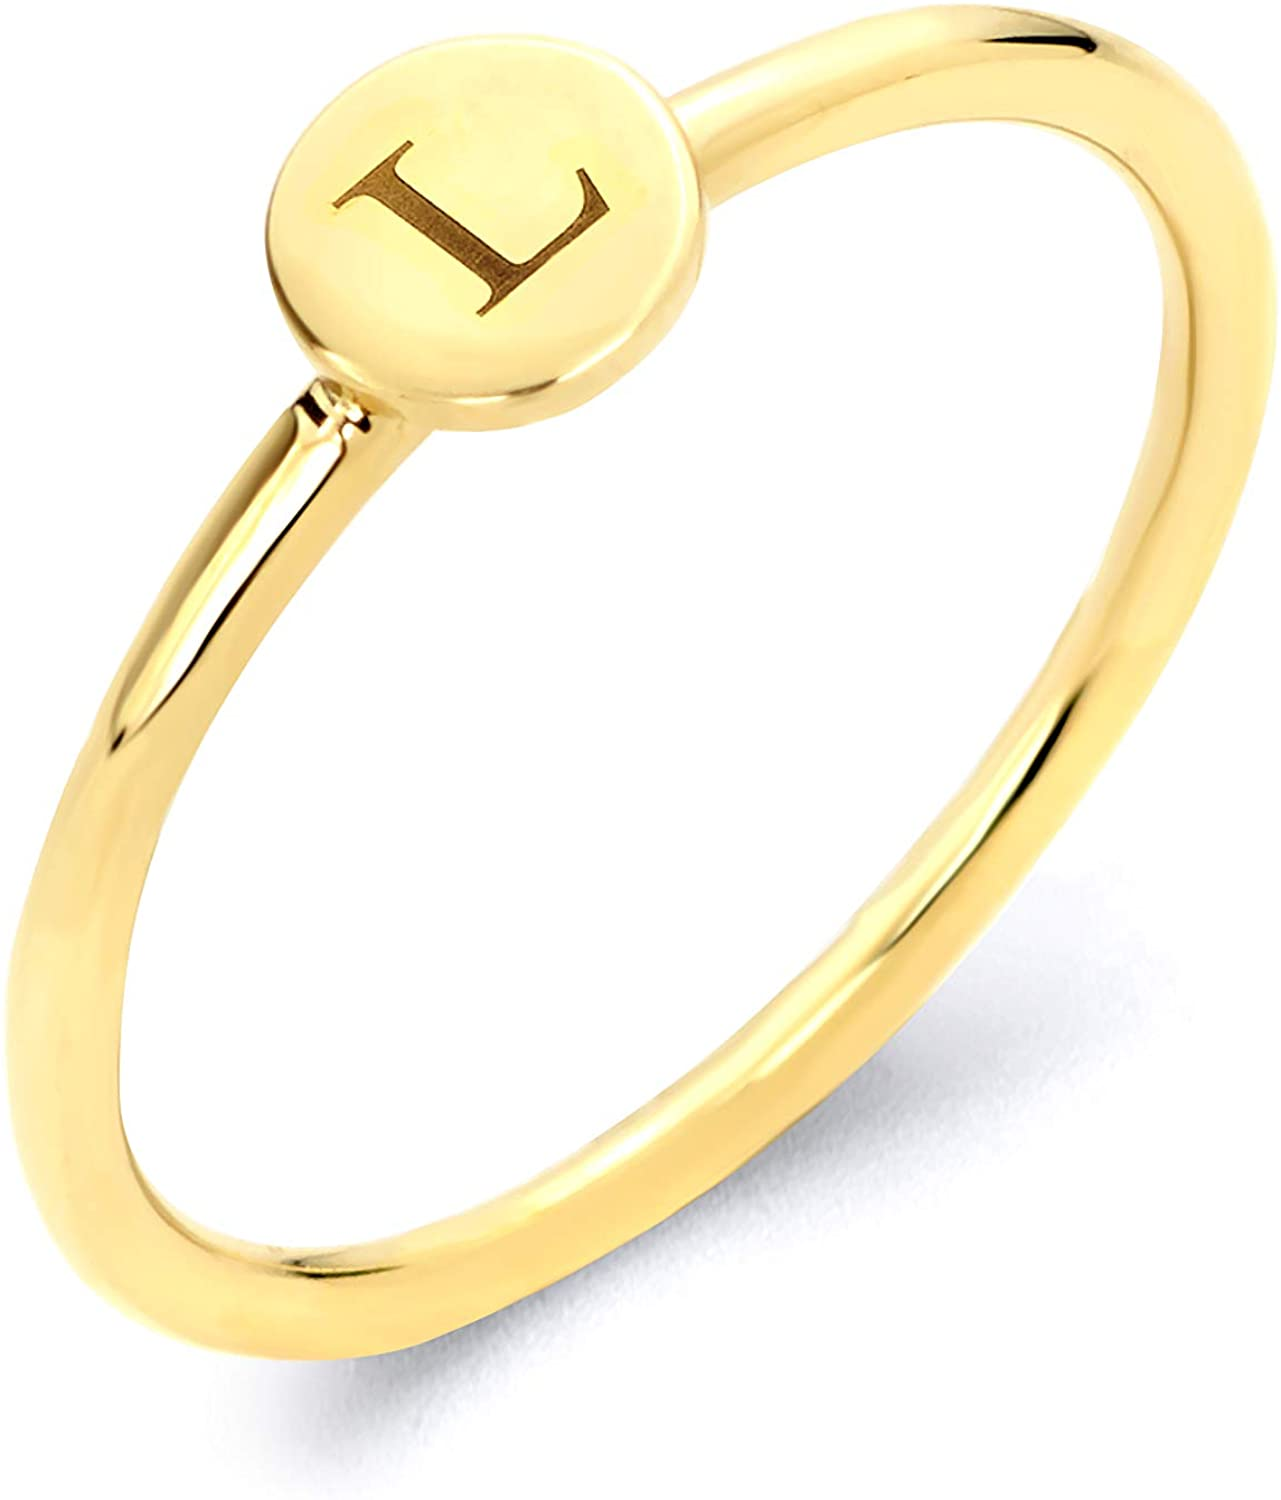 14k Real Solid Gold Initial Stacking Ring, Available in Letters A-Z Engraved Personalized Jewelry